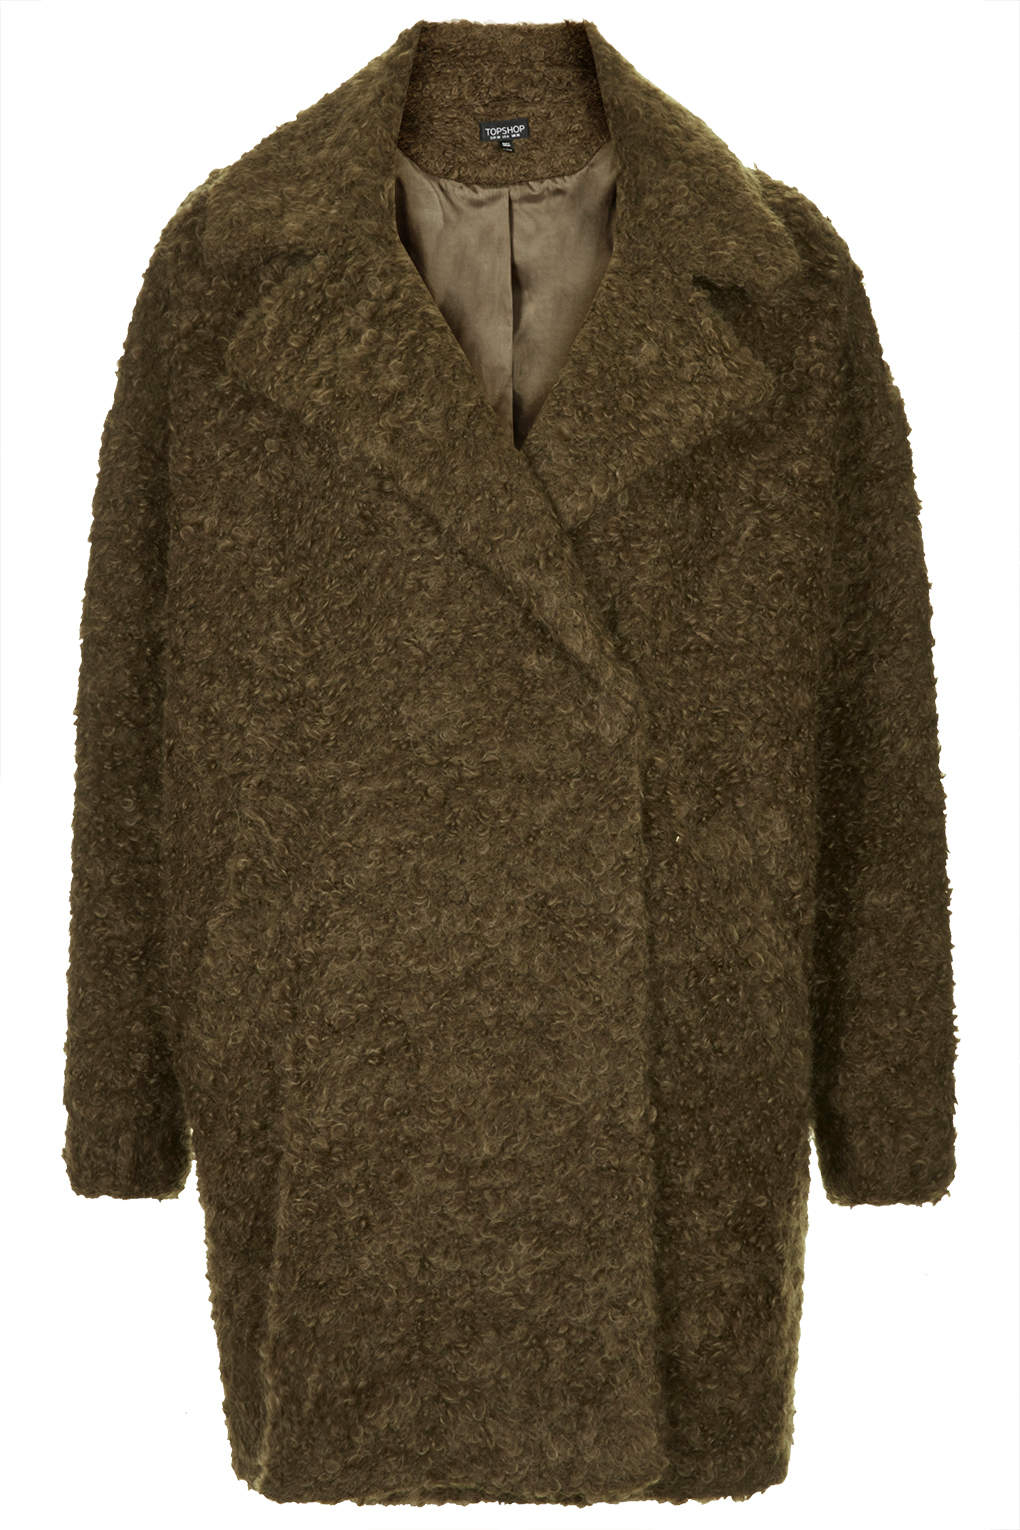 Topshop Womens Slouchy Mohair Boyfriend Coat Olive in ...